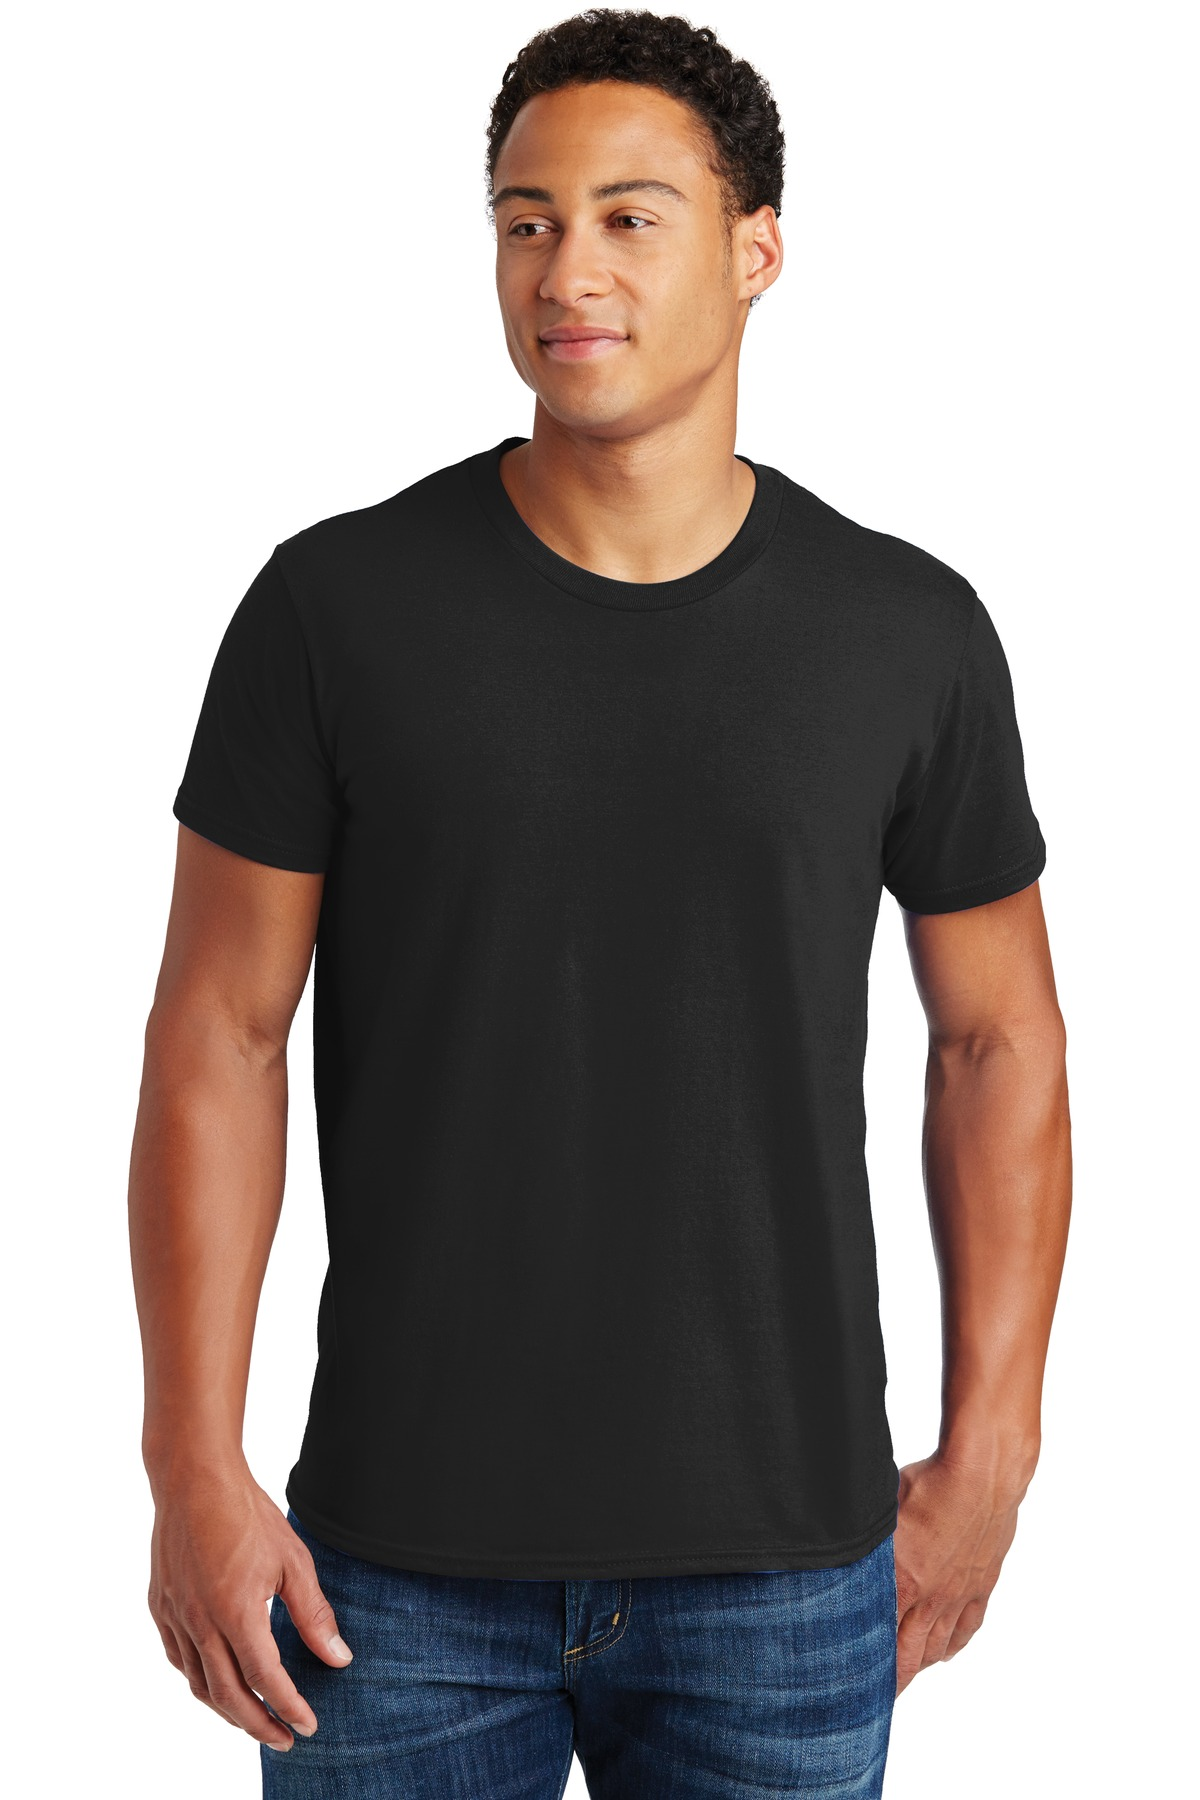 Hanes ®  - Nano-T ®  Cotton T-Shirt. 4980 - Black